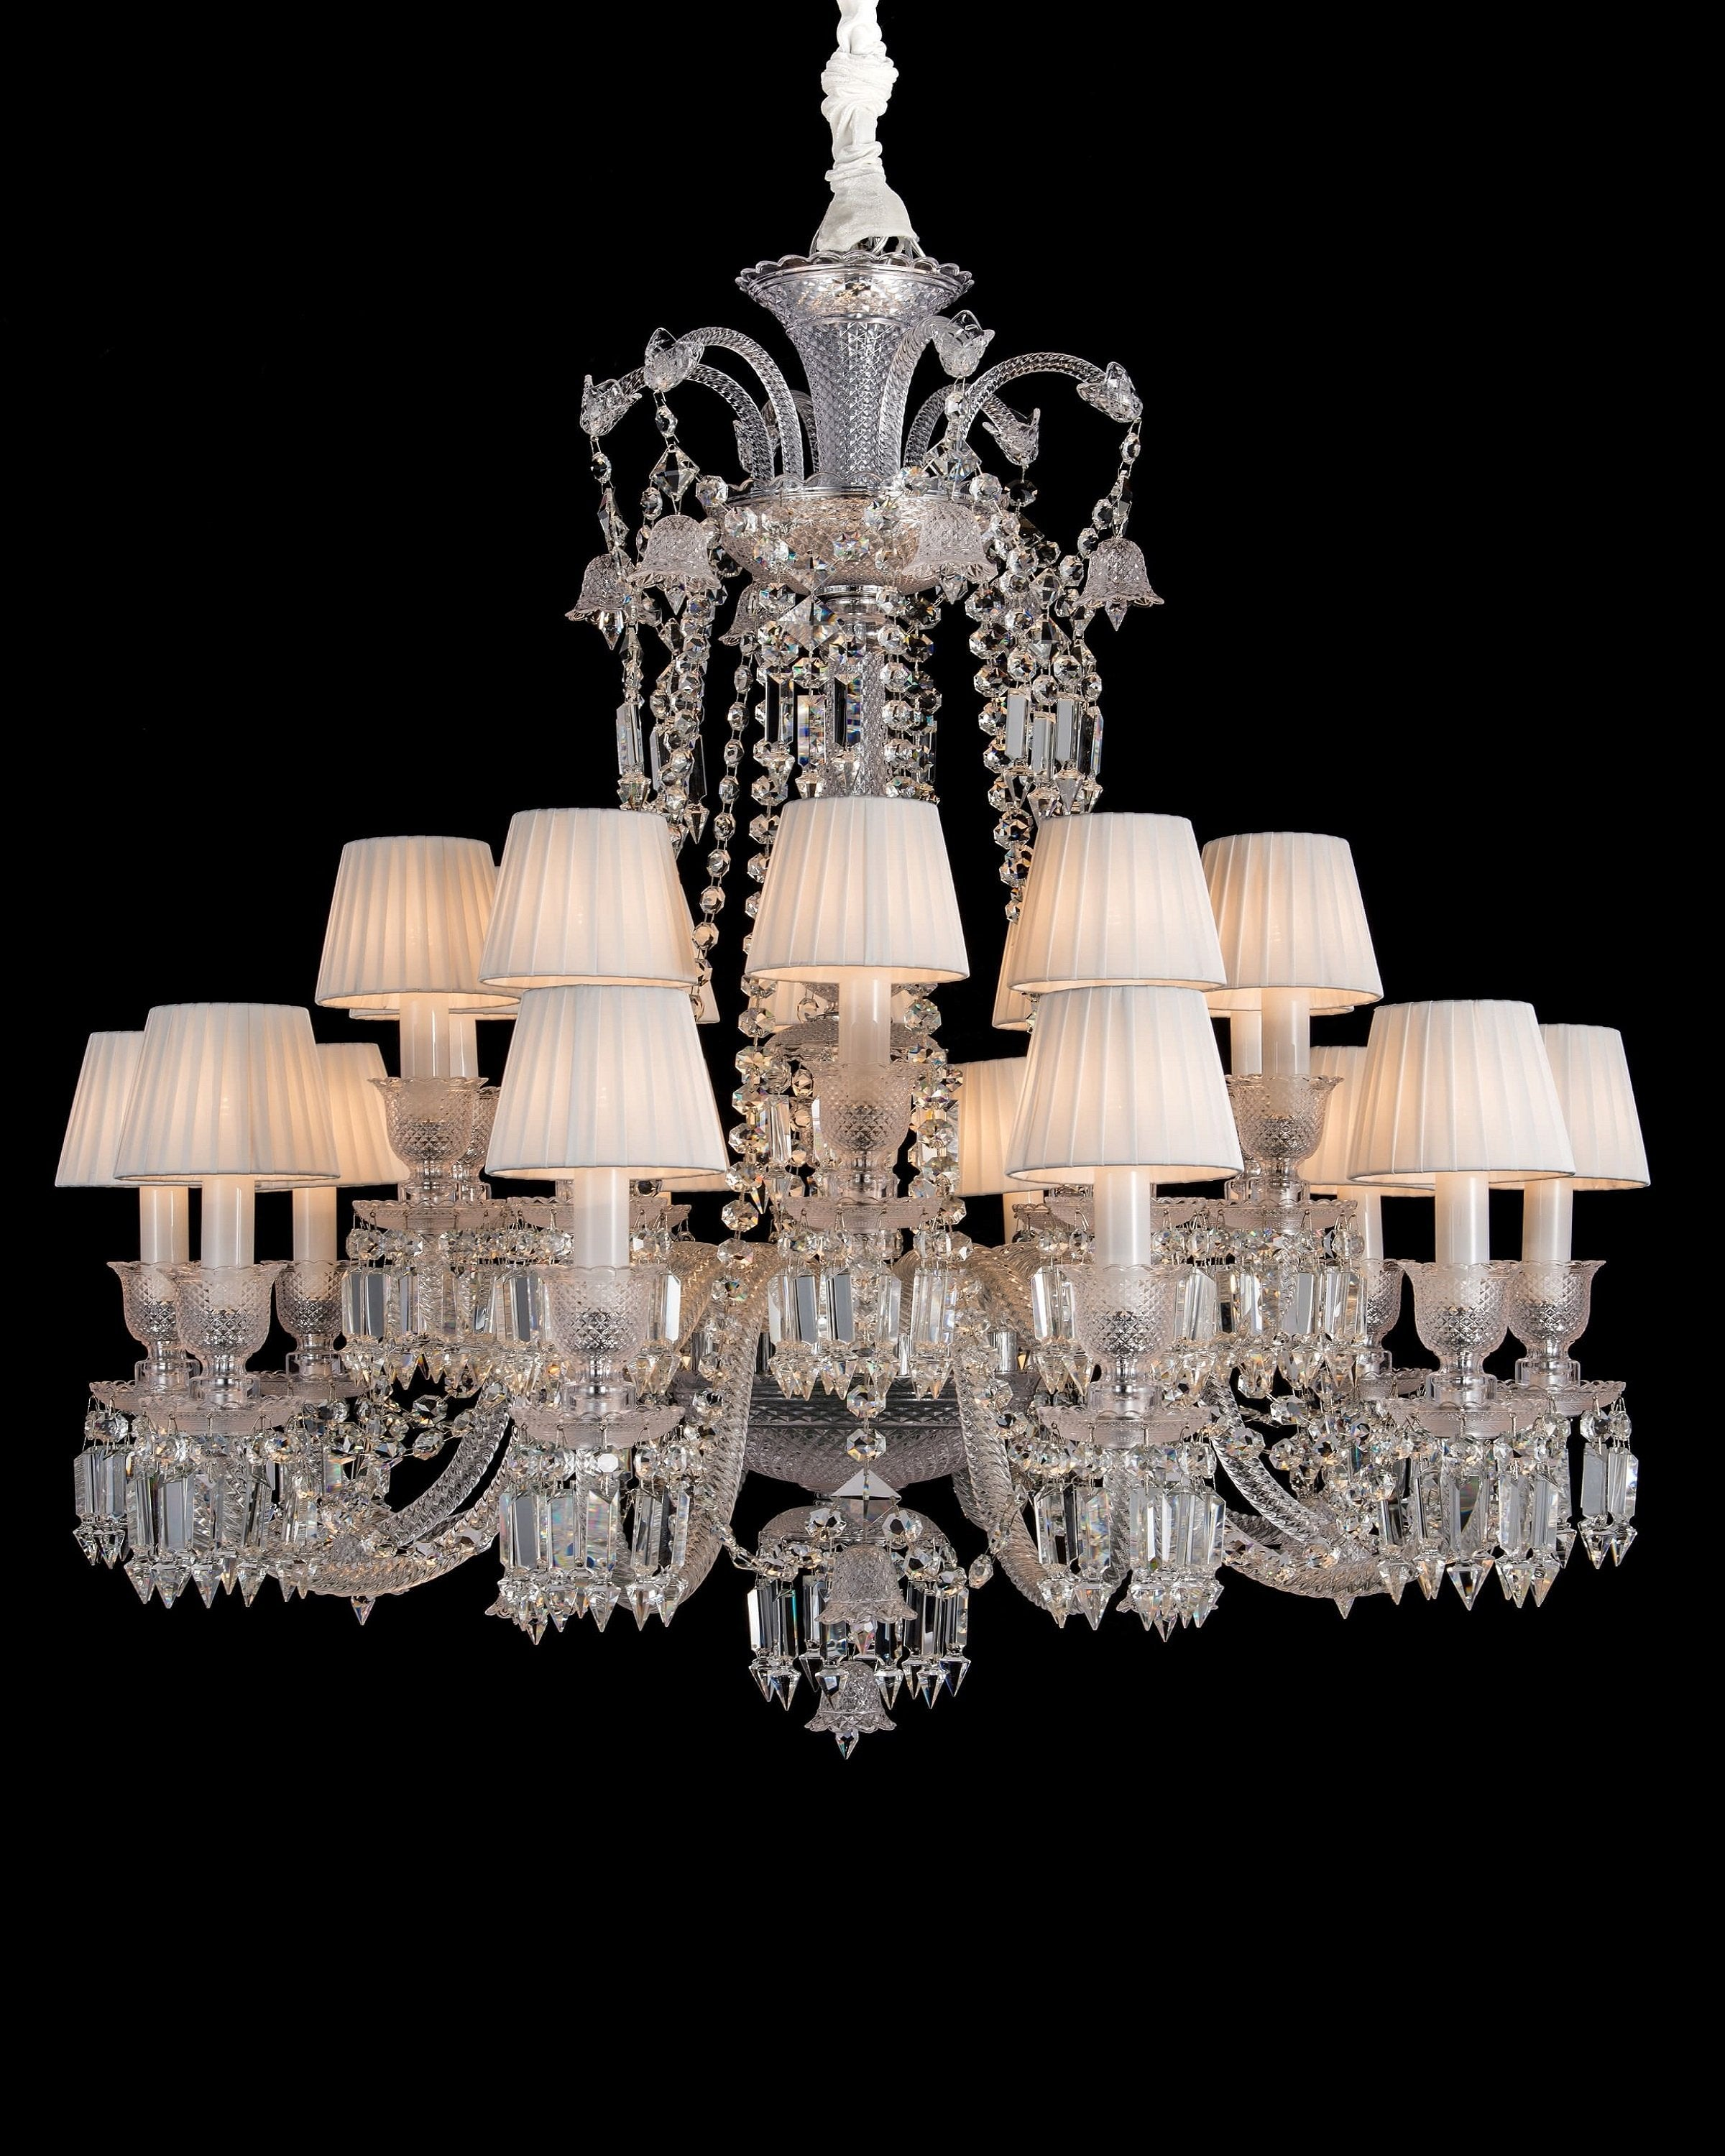 Modern crystal chandelier | ANGIE HOMES